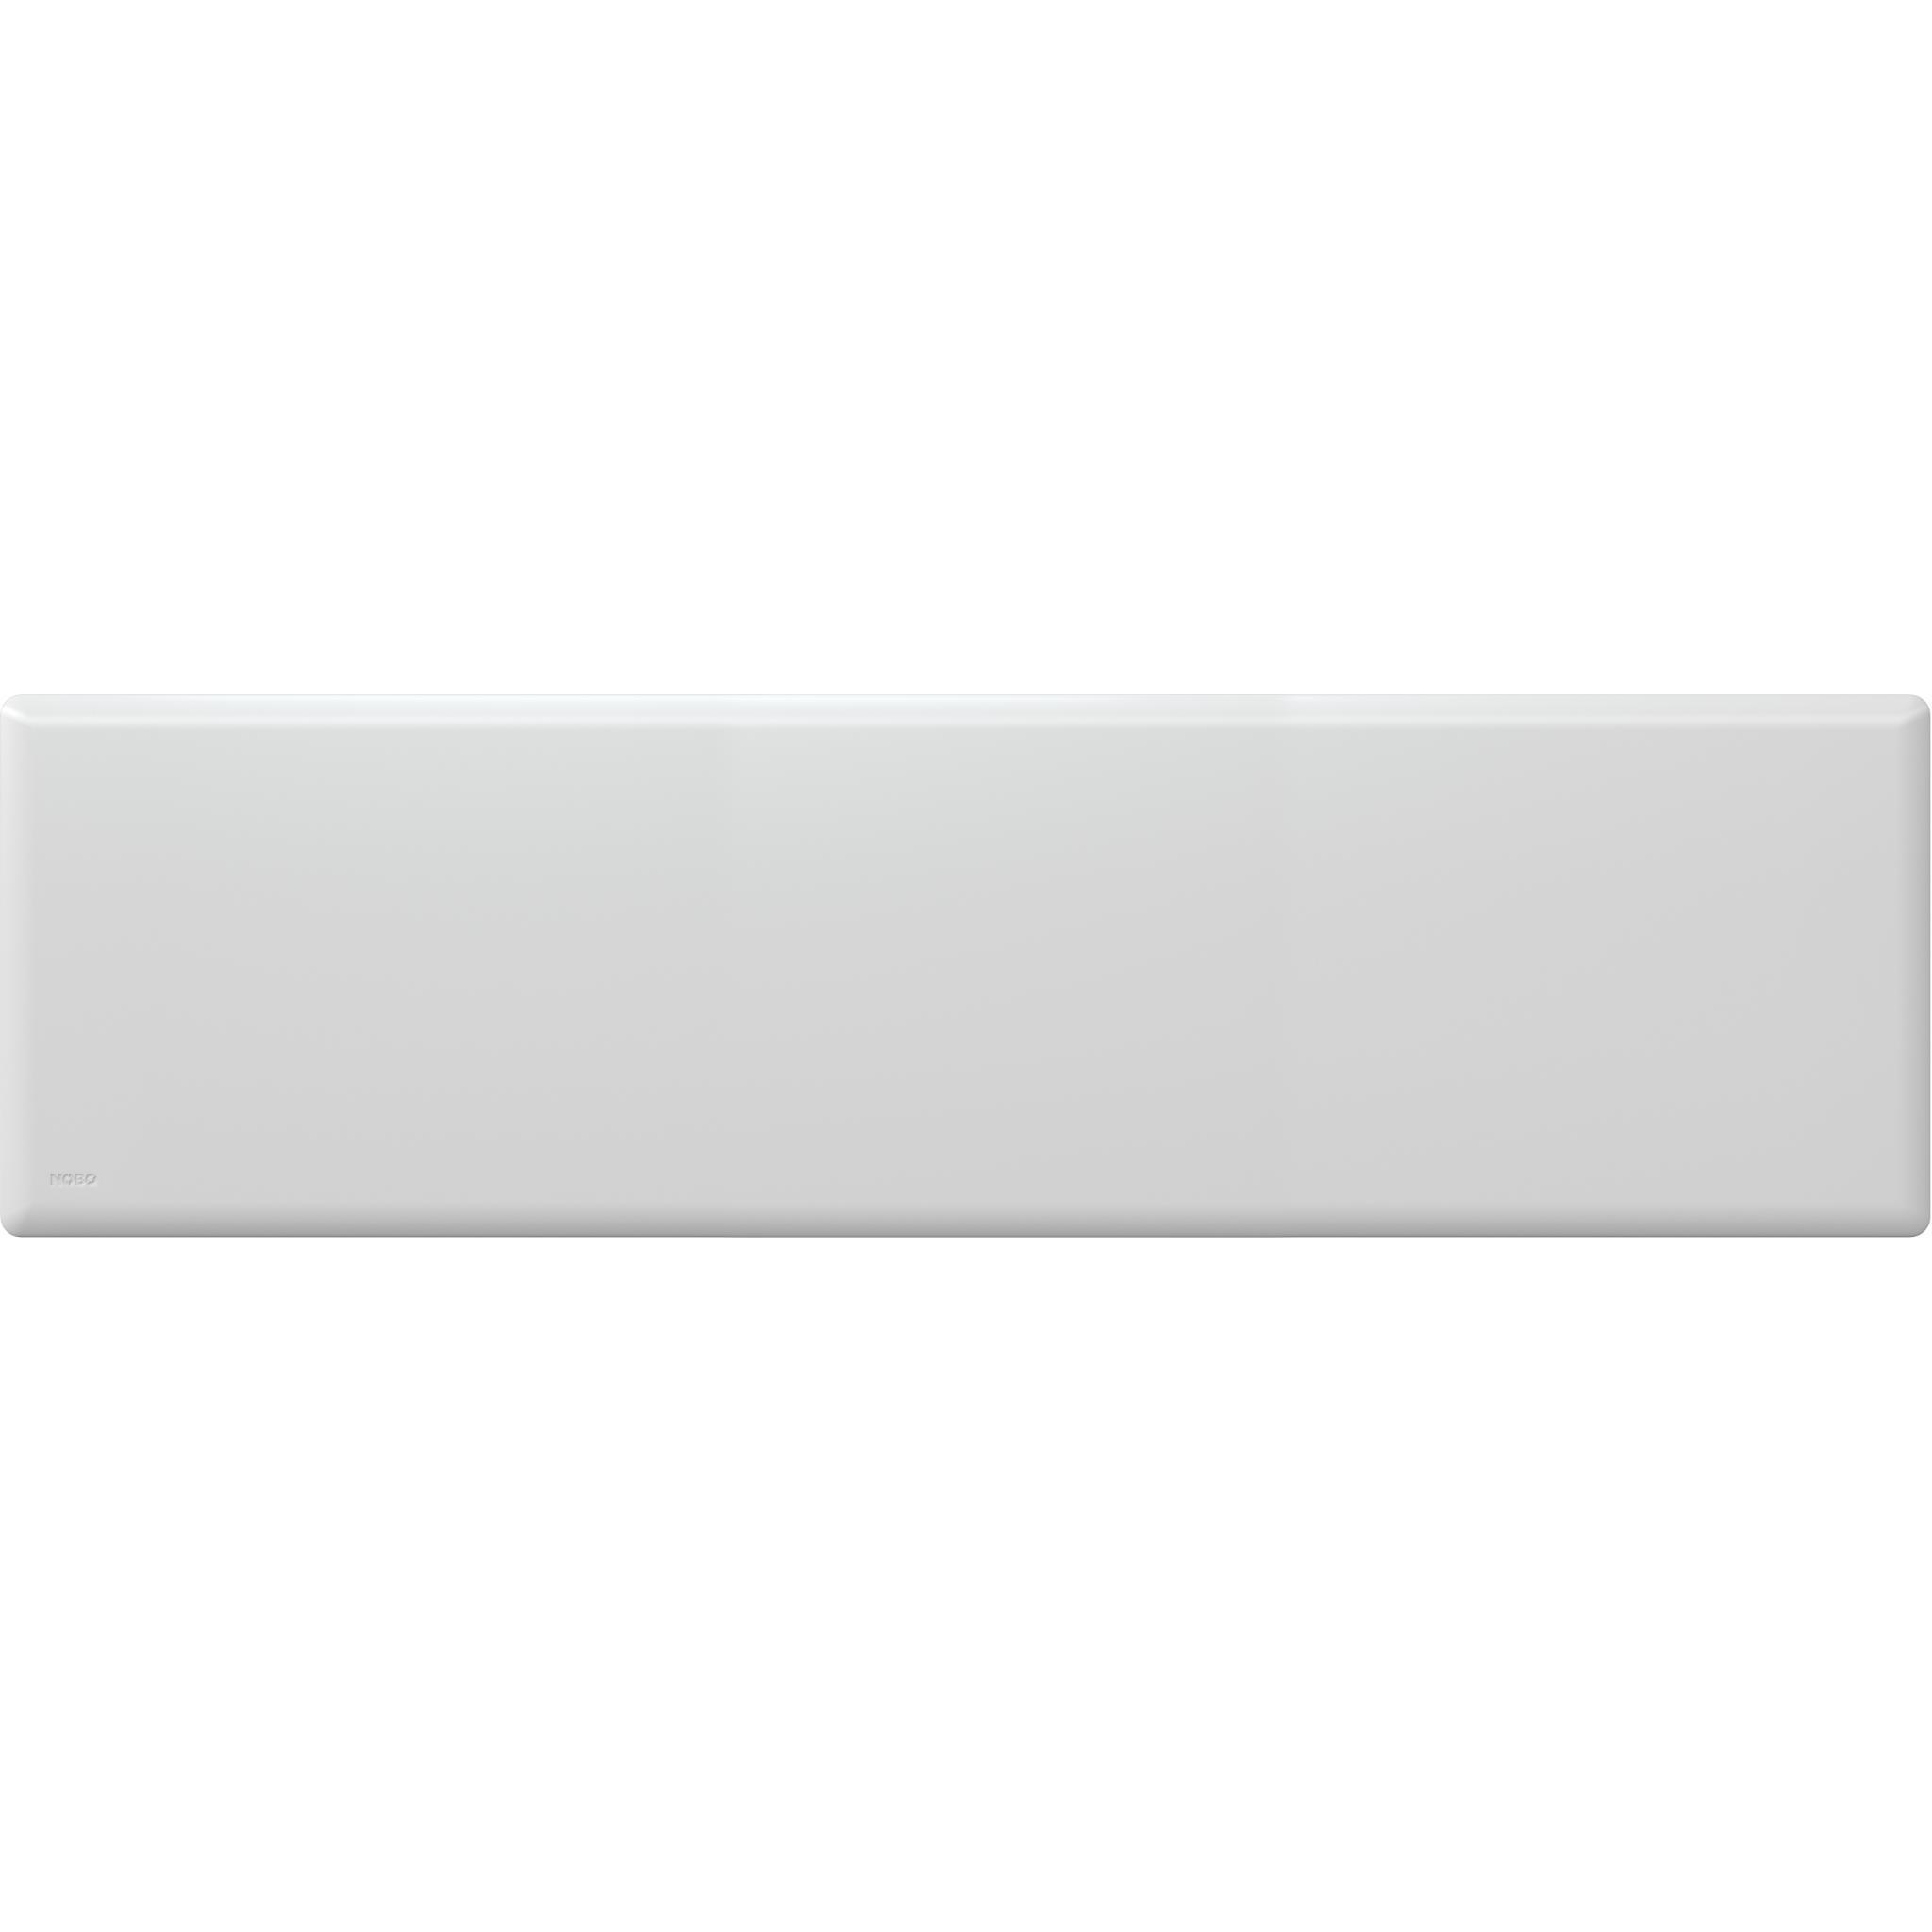 Nobo 2.4kW Slimline Electric Panel Heater with Timer